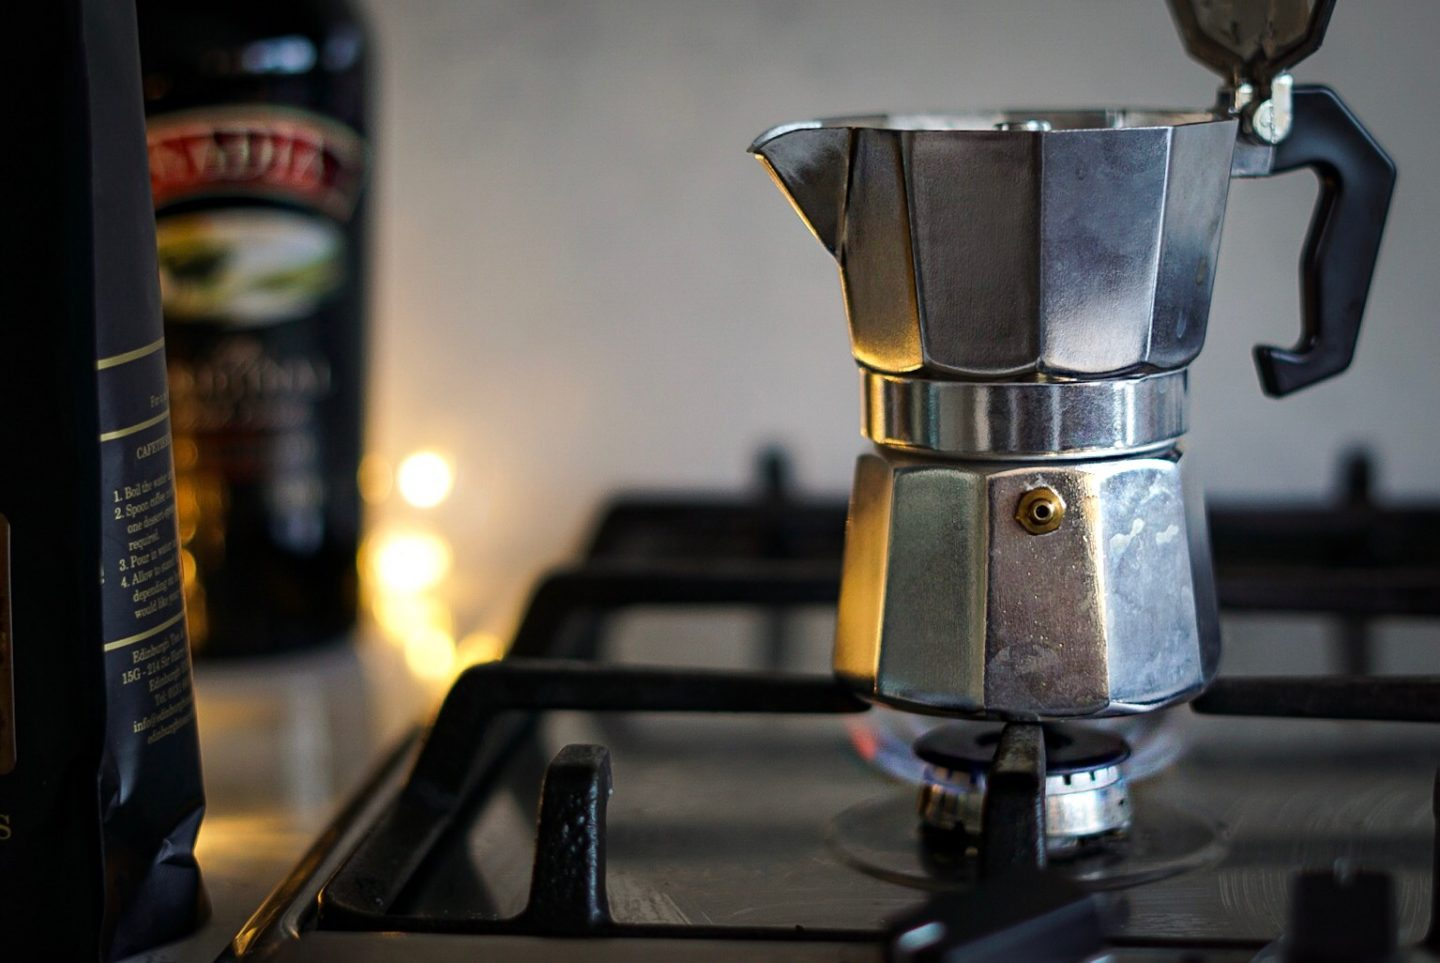 TK Maxx Italian caffettiera moka pot vanilla coffee and baileys